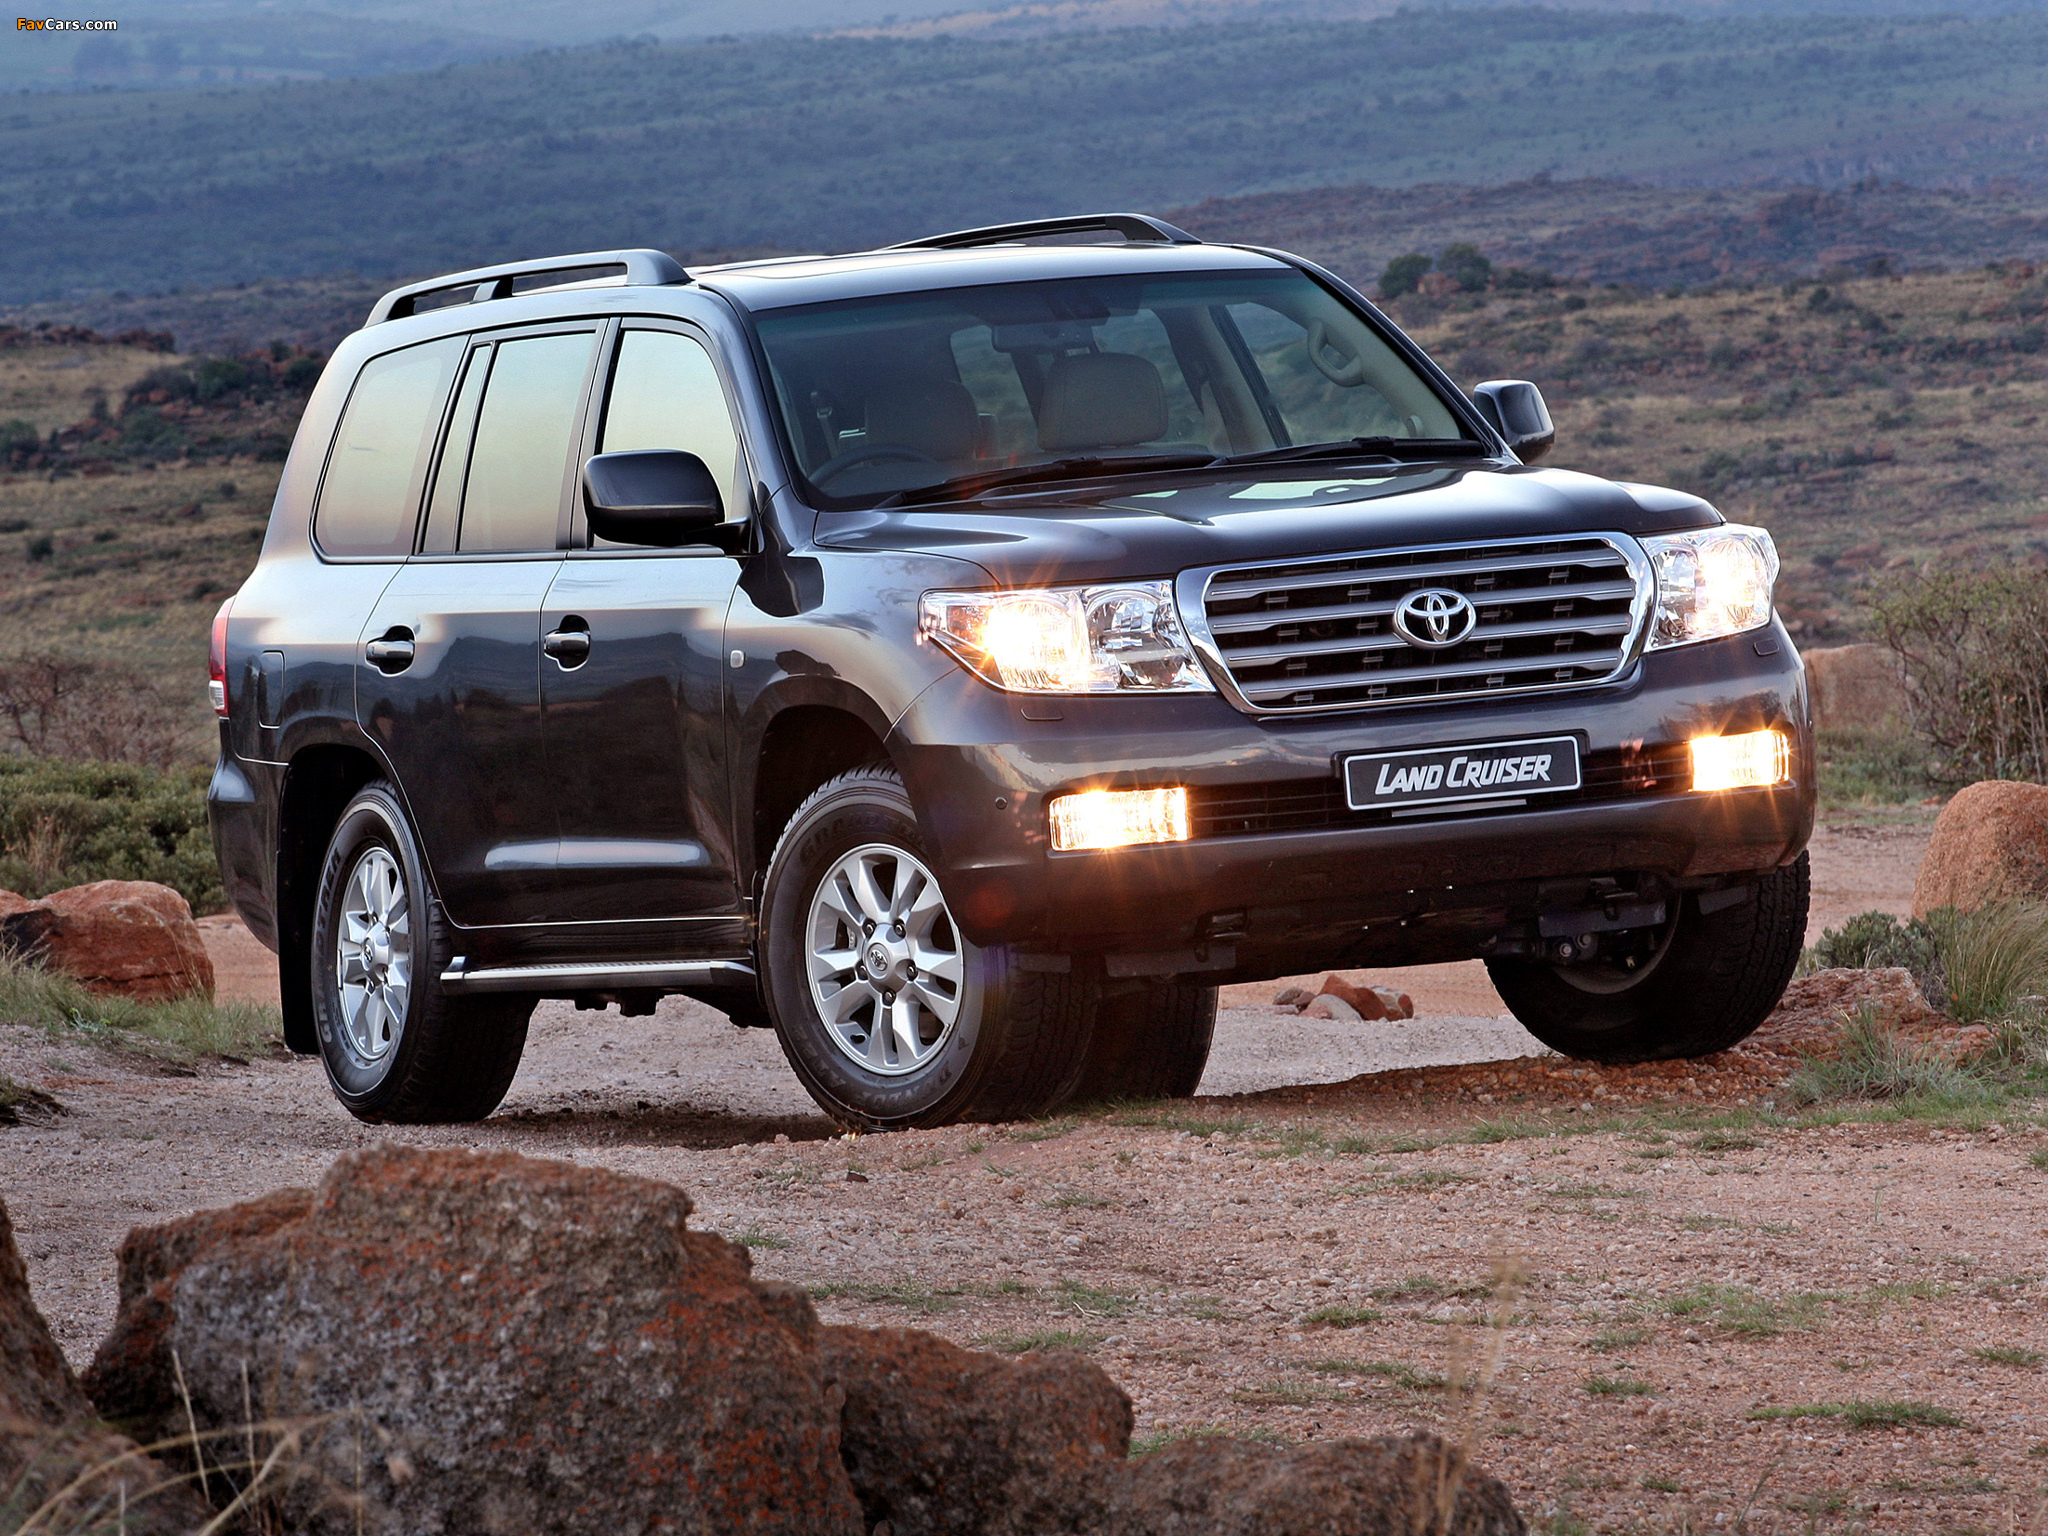 2007 toyota land cruiser 200 pictures information and. Black Bedroom Furniture Sets. Home Design Ideas